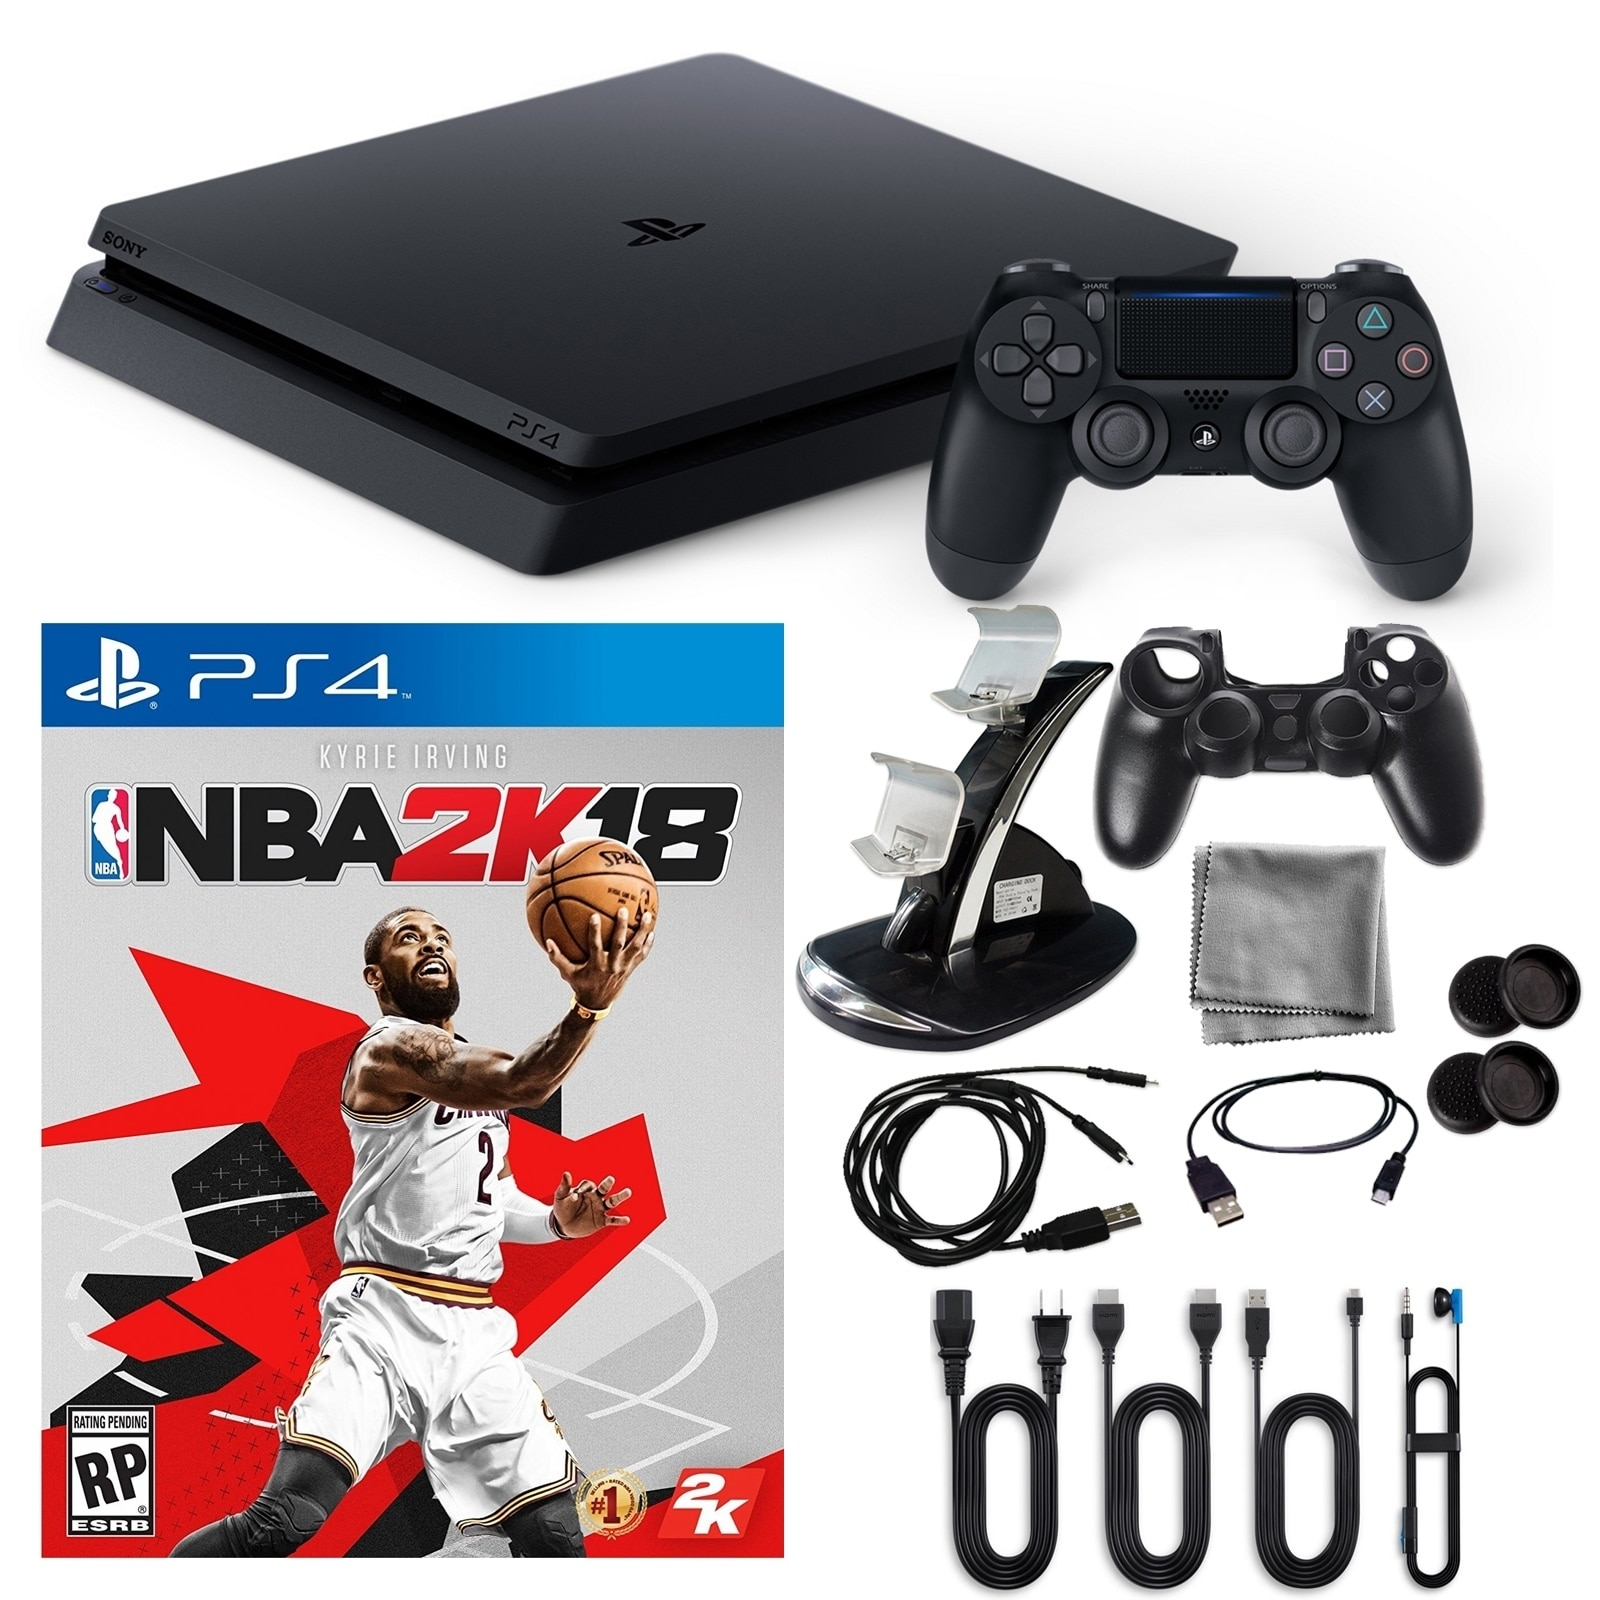 Playstation 4 1TB Core Console with NBA 2K and Accessorie...